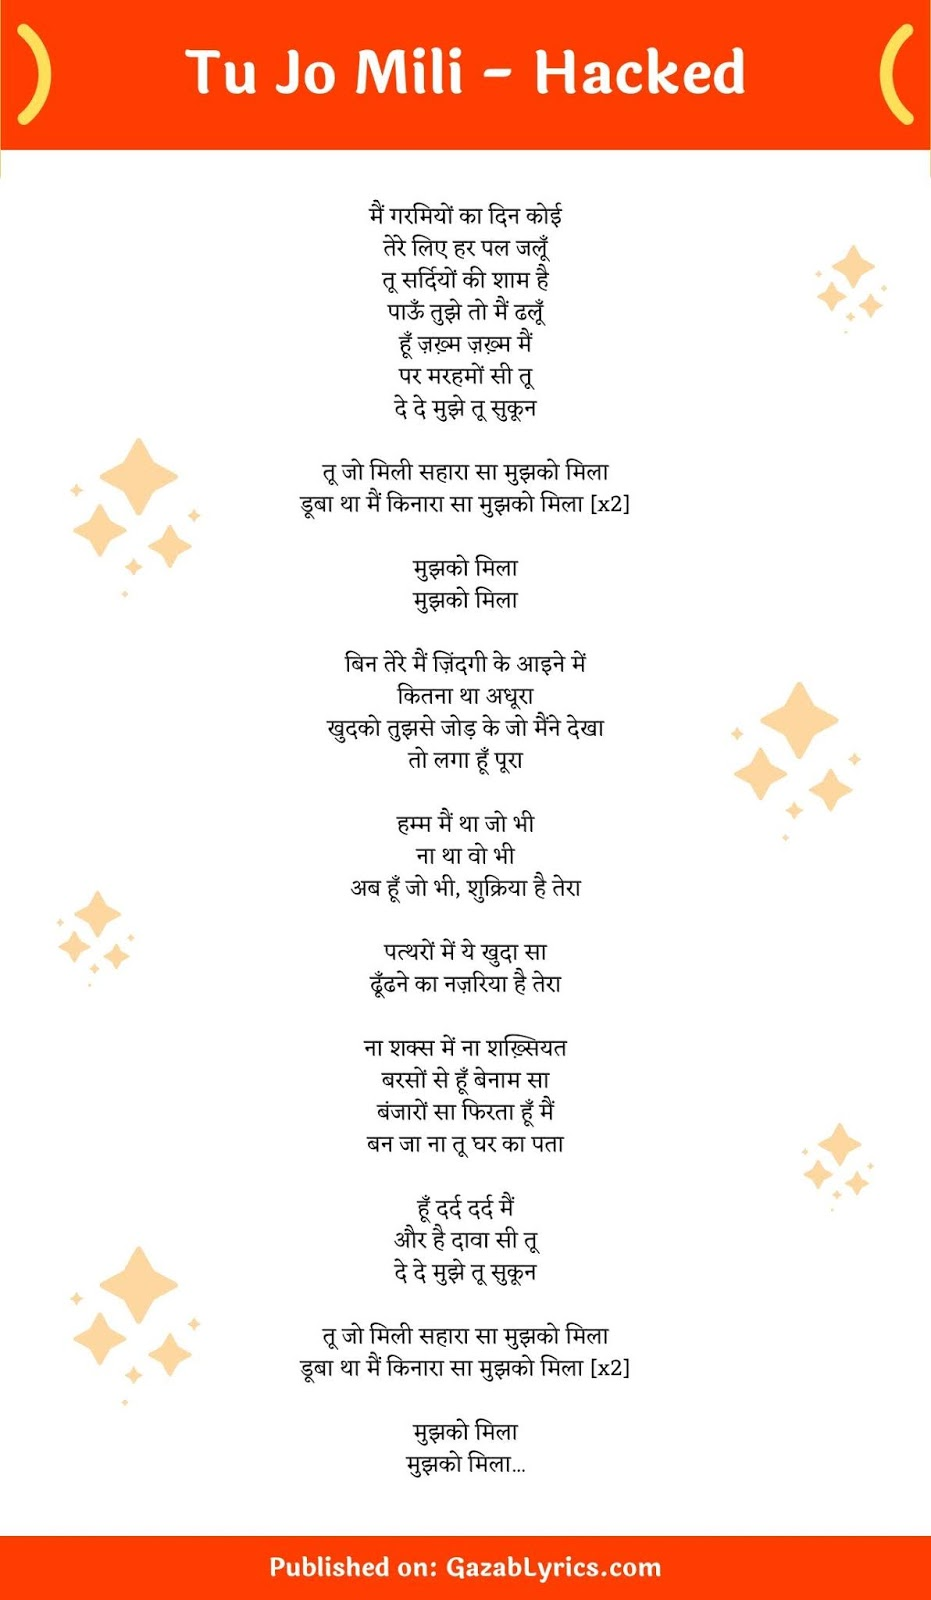 Tu Jo Mili song lyrics image